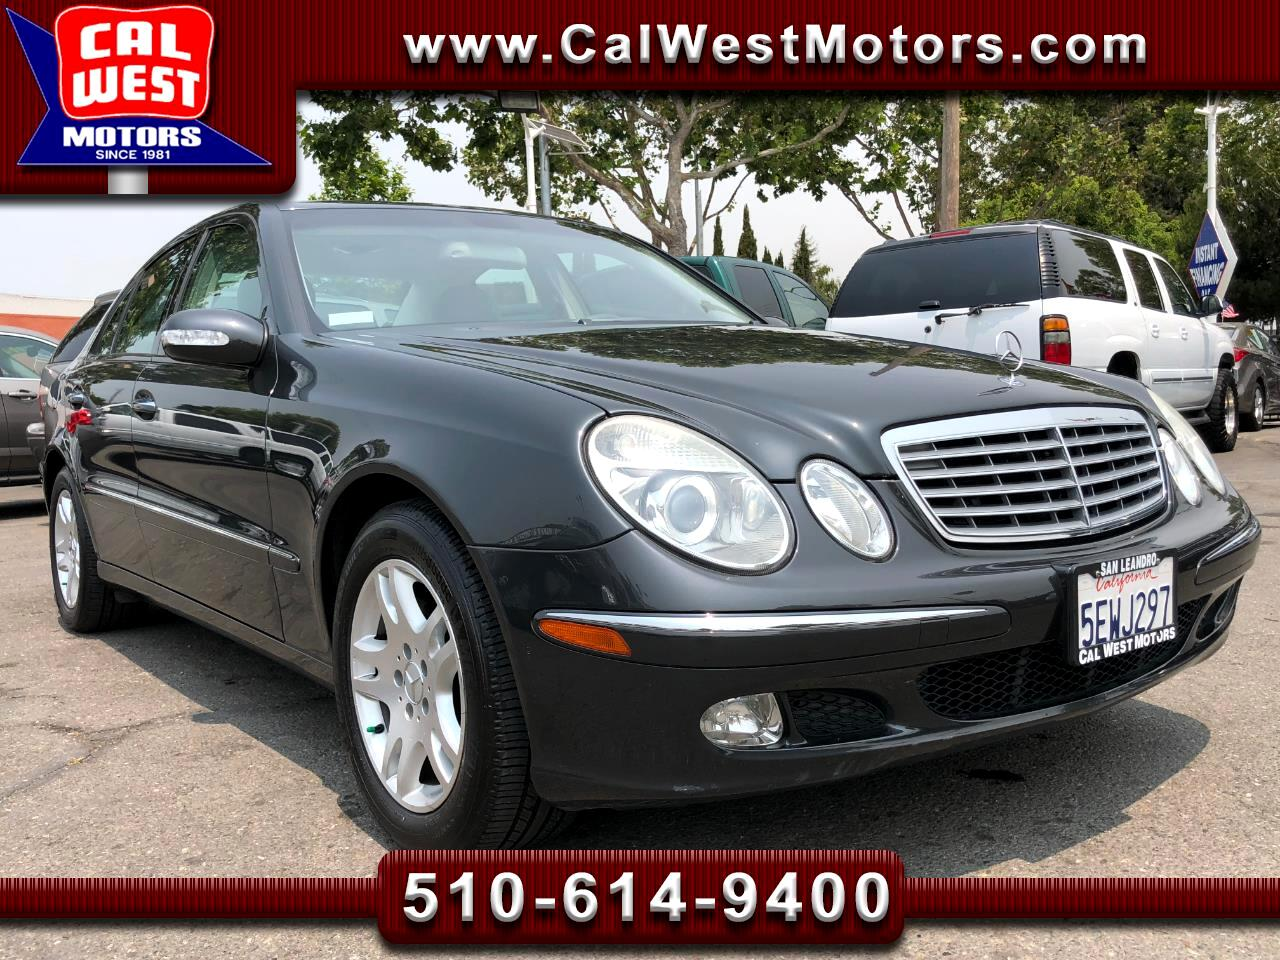 2004 Mercedes-Benz E-Class E320 Sedan 3.2L V6 LowMiles Expertly Maintained